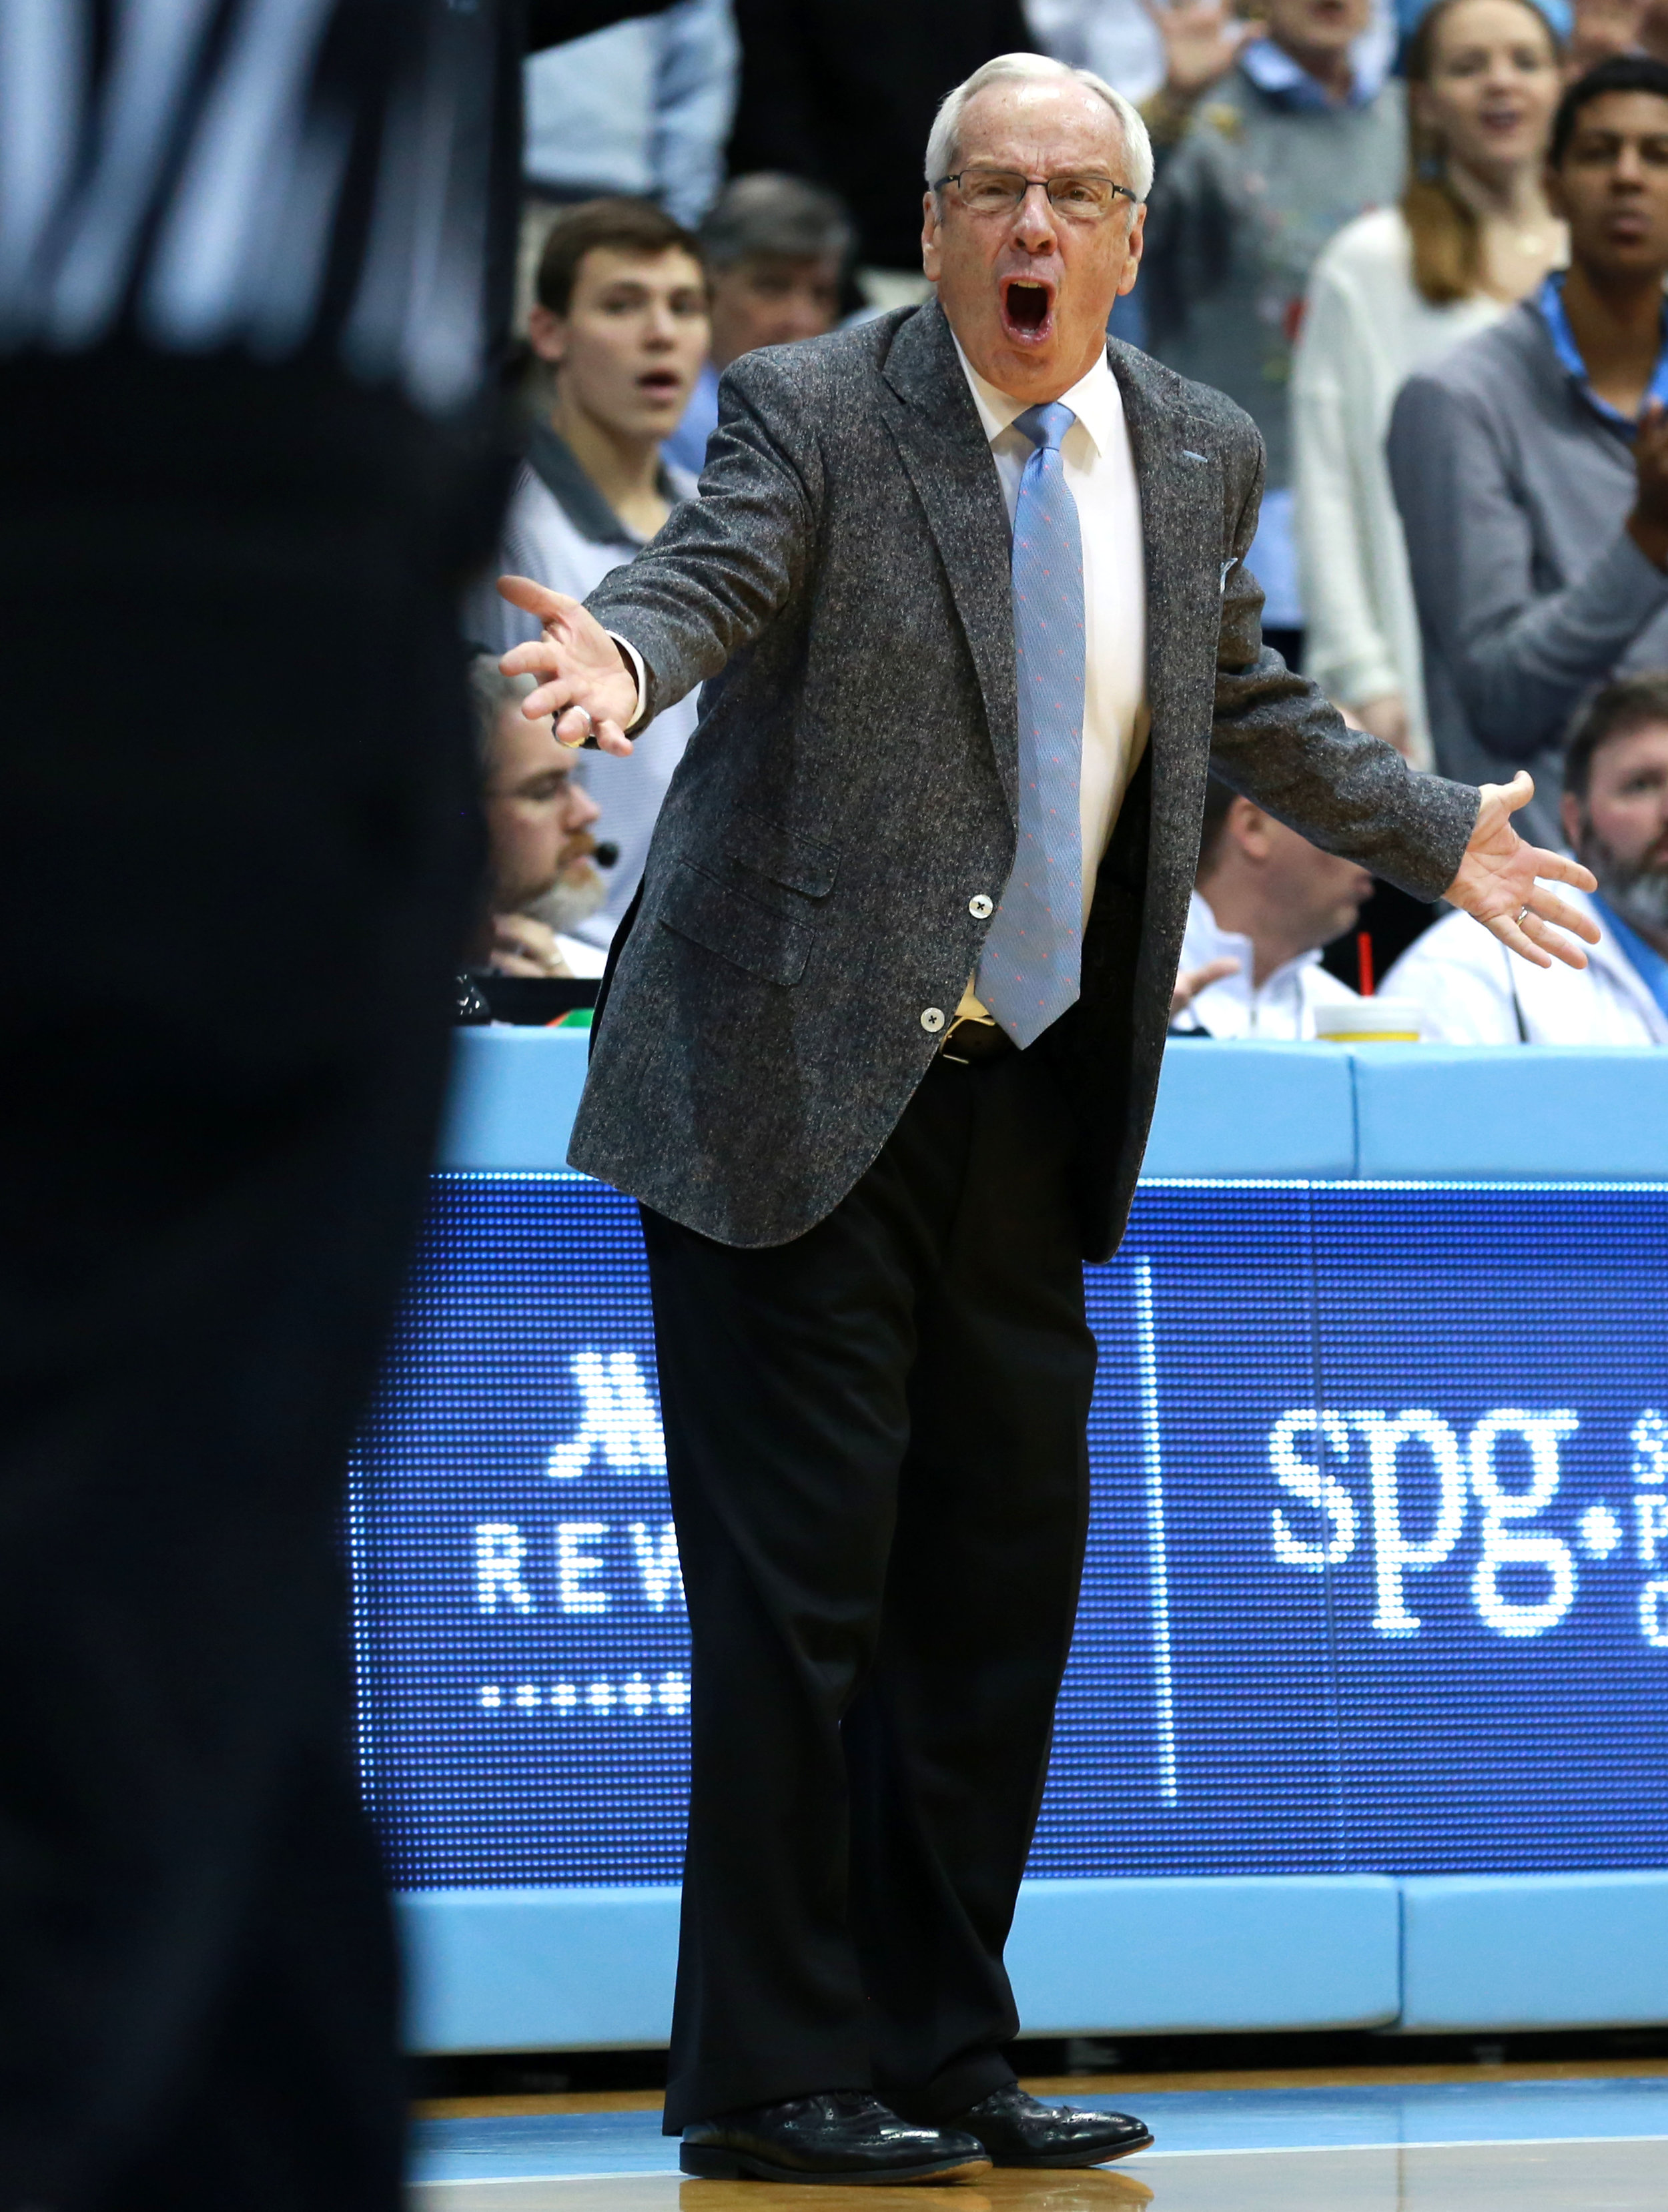 Roy Williams attempts to get a referee's attention during Saturday's loss to Louisville. The Hall of Fame coach suffered his worst home defeat of his Carolina head coaching career against the Cardinals. | Photo by Alex Kormann